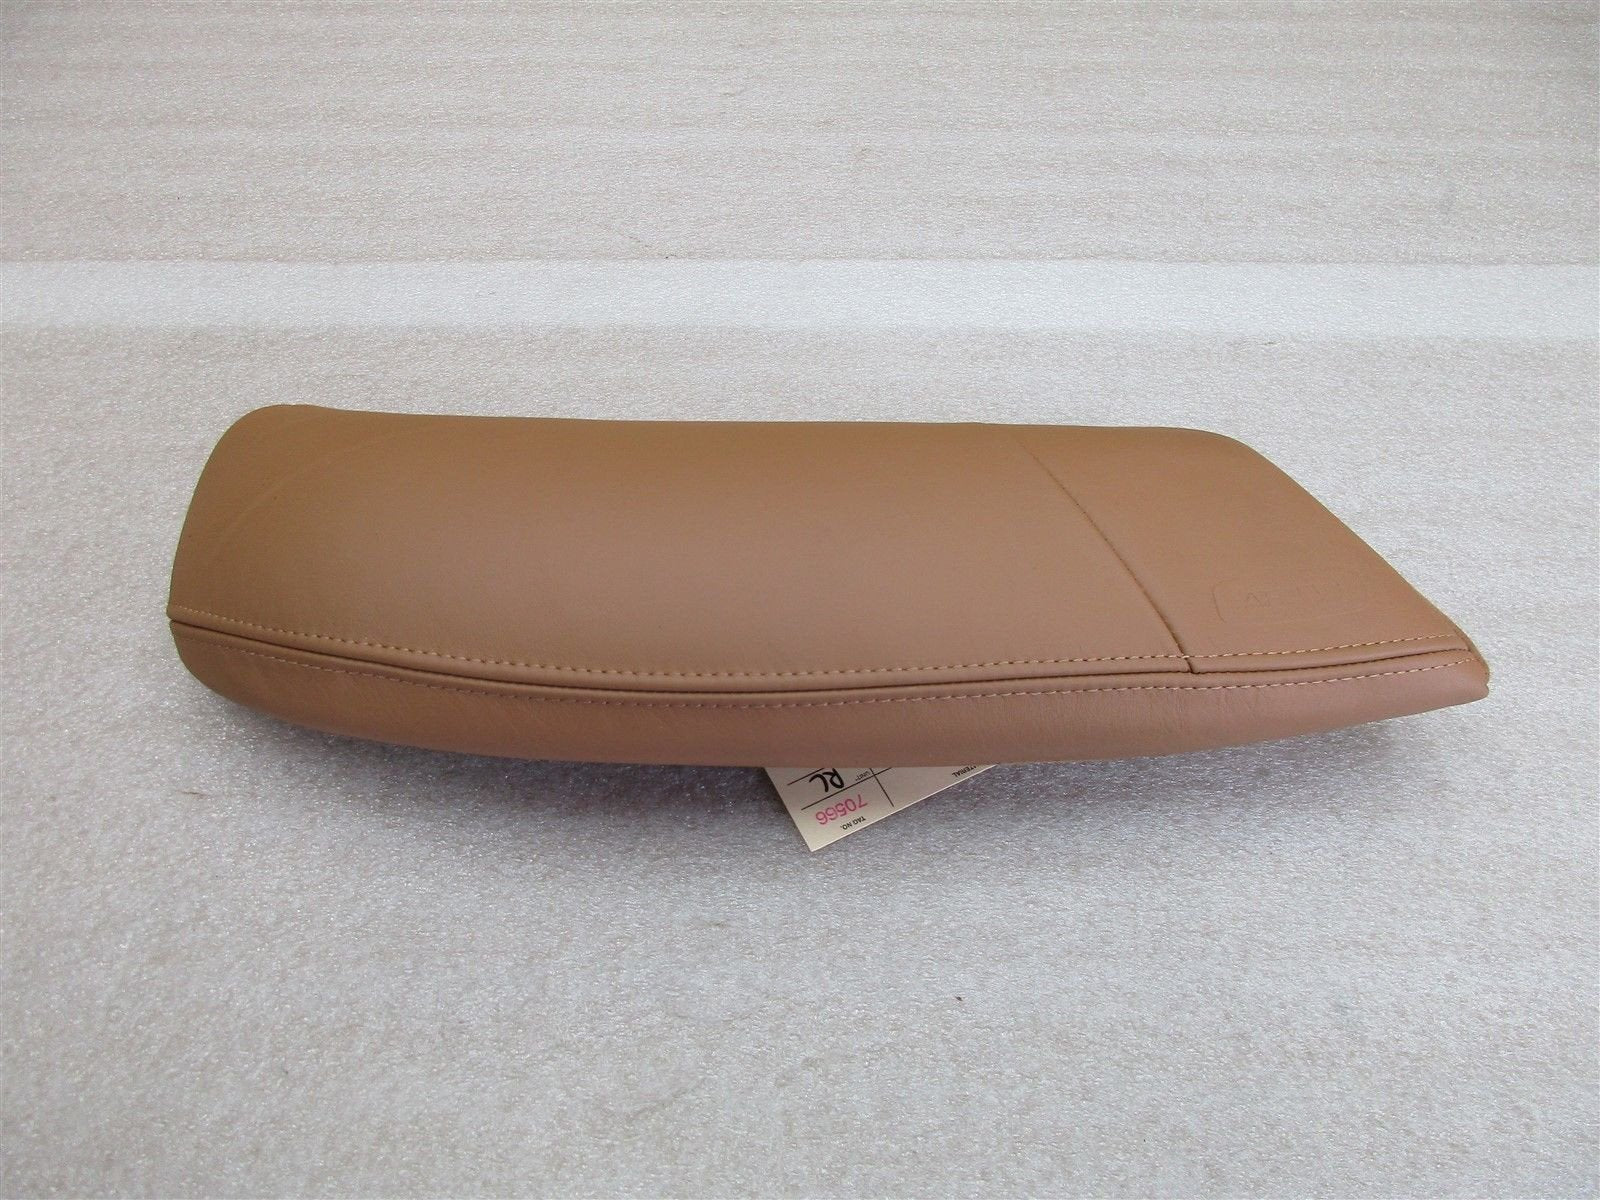 10 Panamera Turbo AWD 970 Porsche L REAR SEAT AIR BAG 97052206131 Leather 74,867